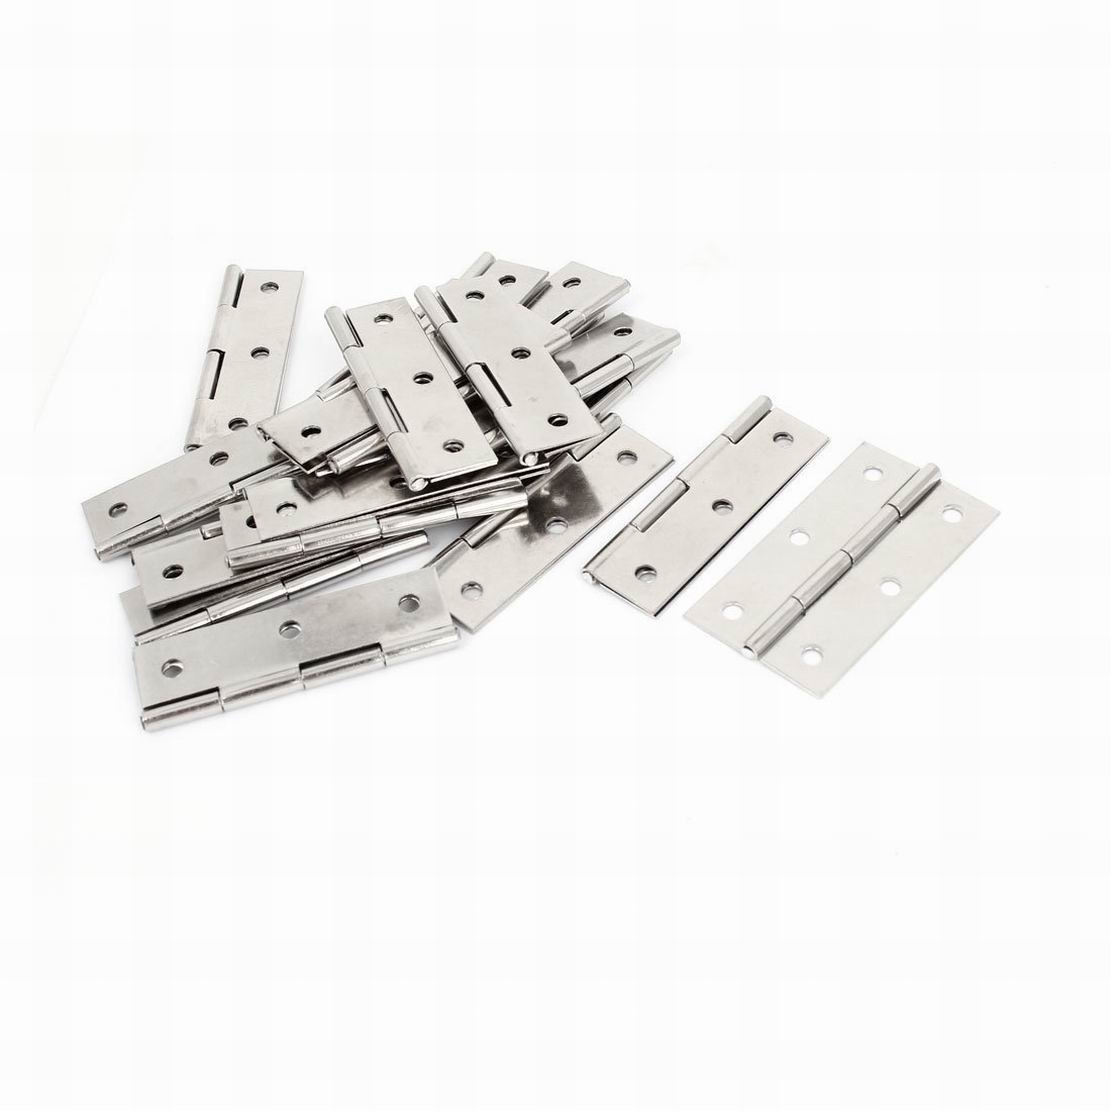 MariaP 2.7 Inch Screws Mounted Cabinet Door Butt Hinges Silver Tone 20 Pcs